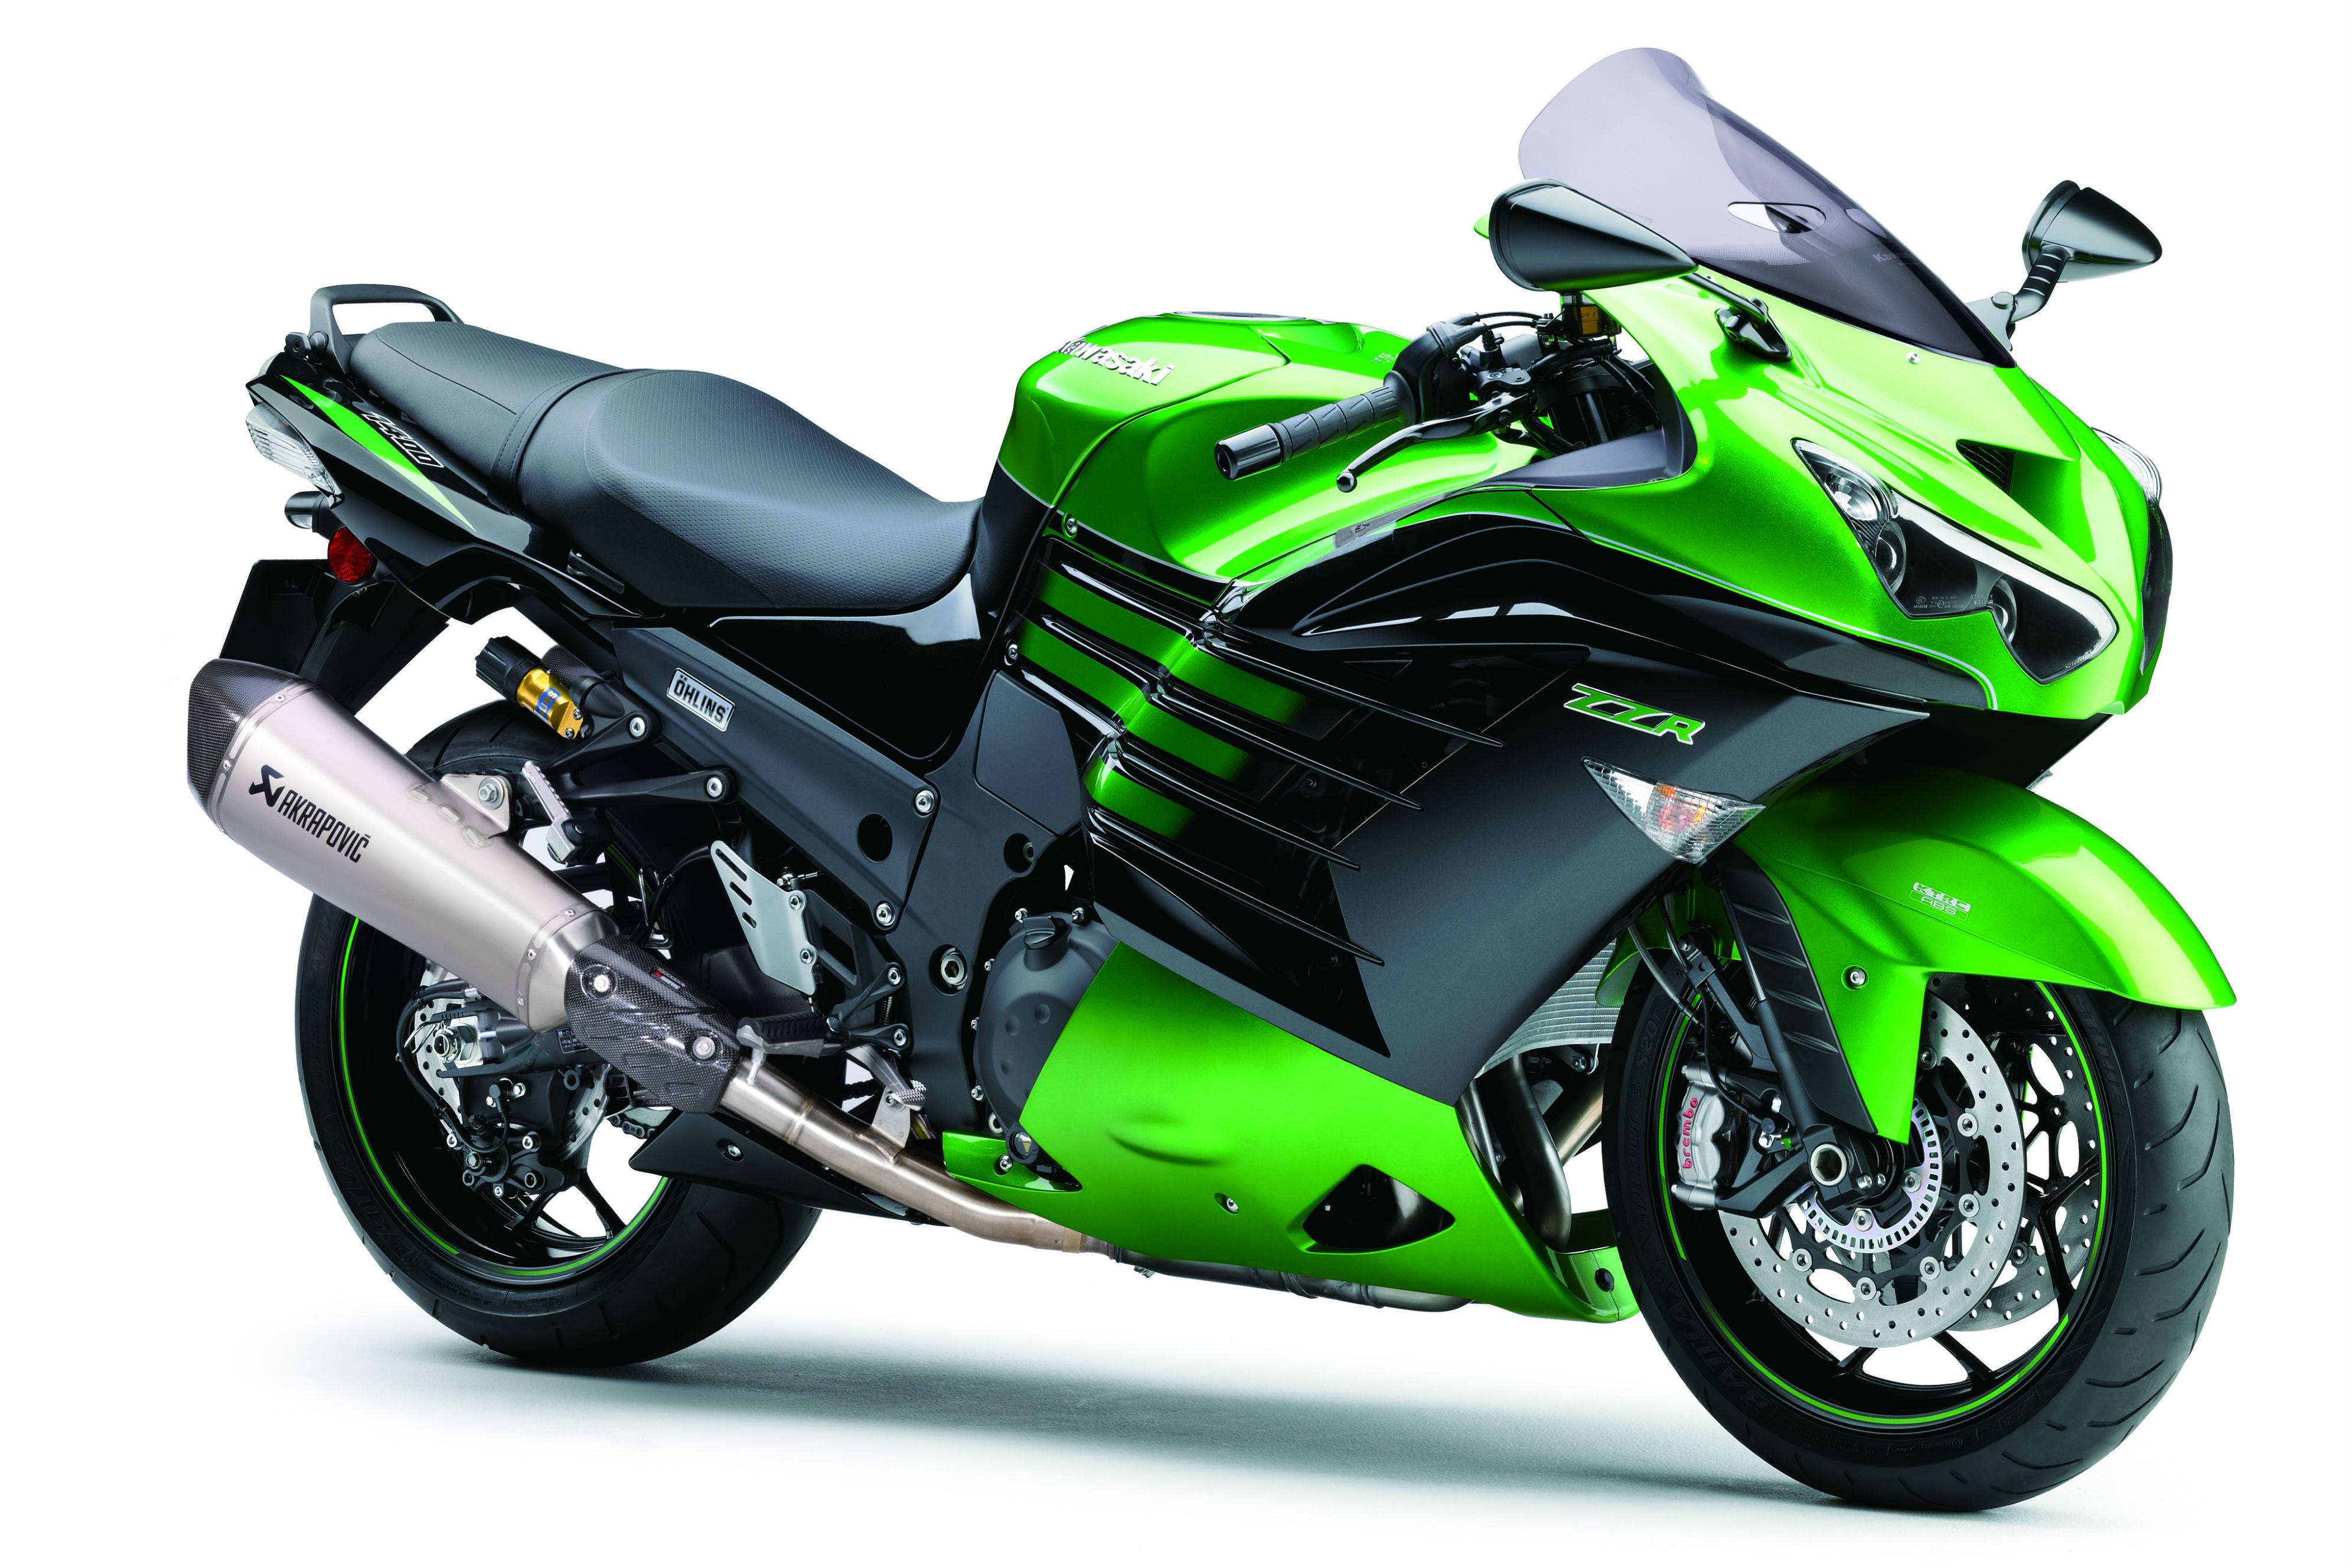 2016 Kawasaki ZZR1400 revealed | Visordown